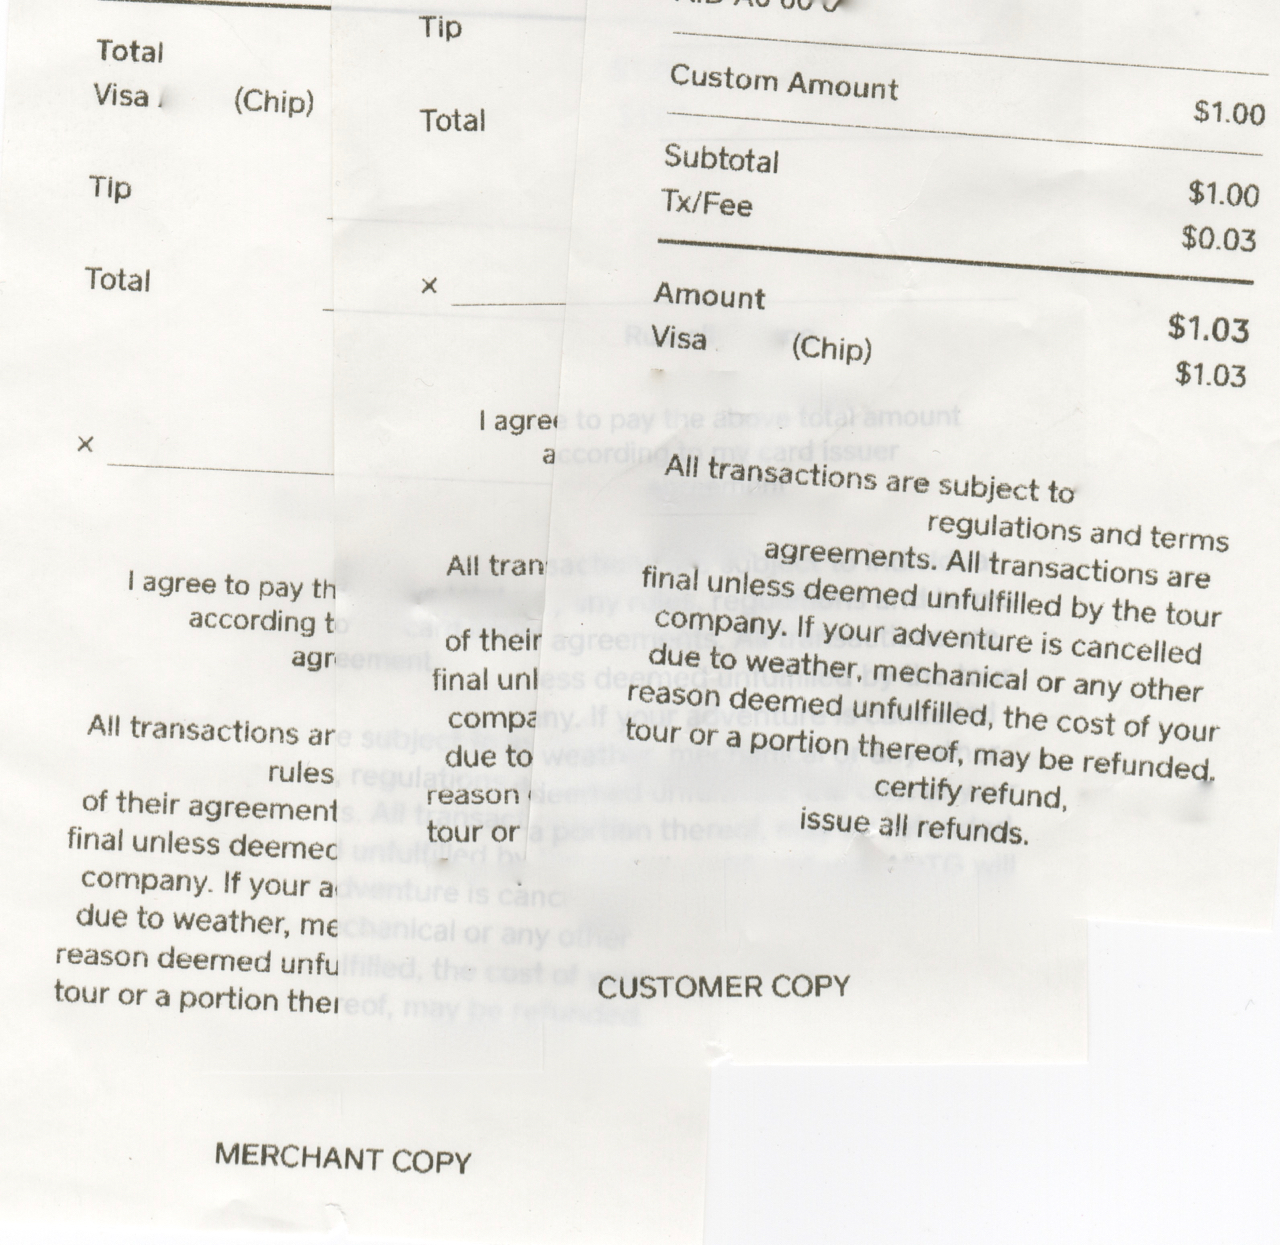 Print Receipt With Signature